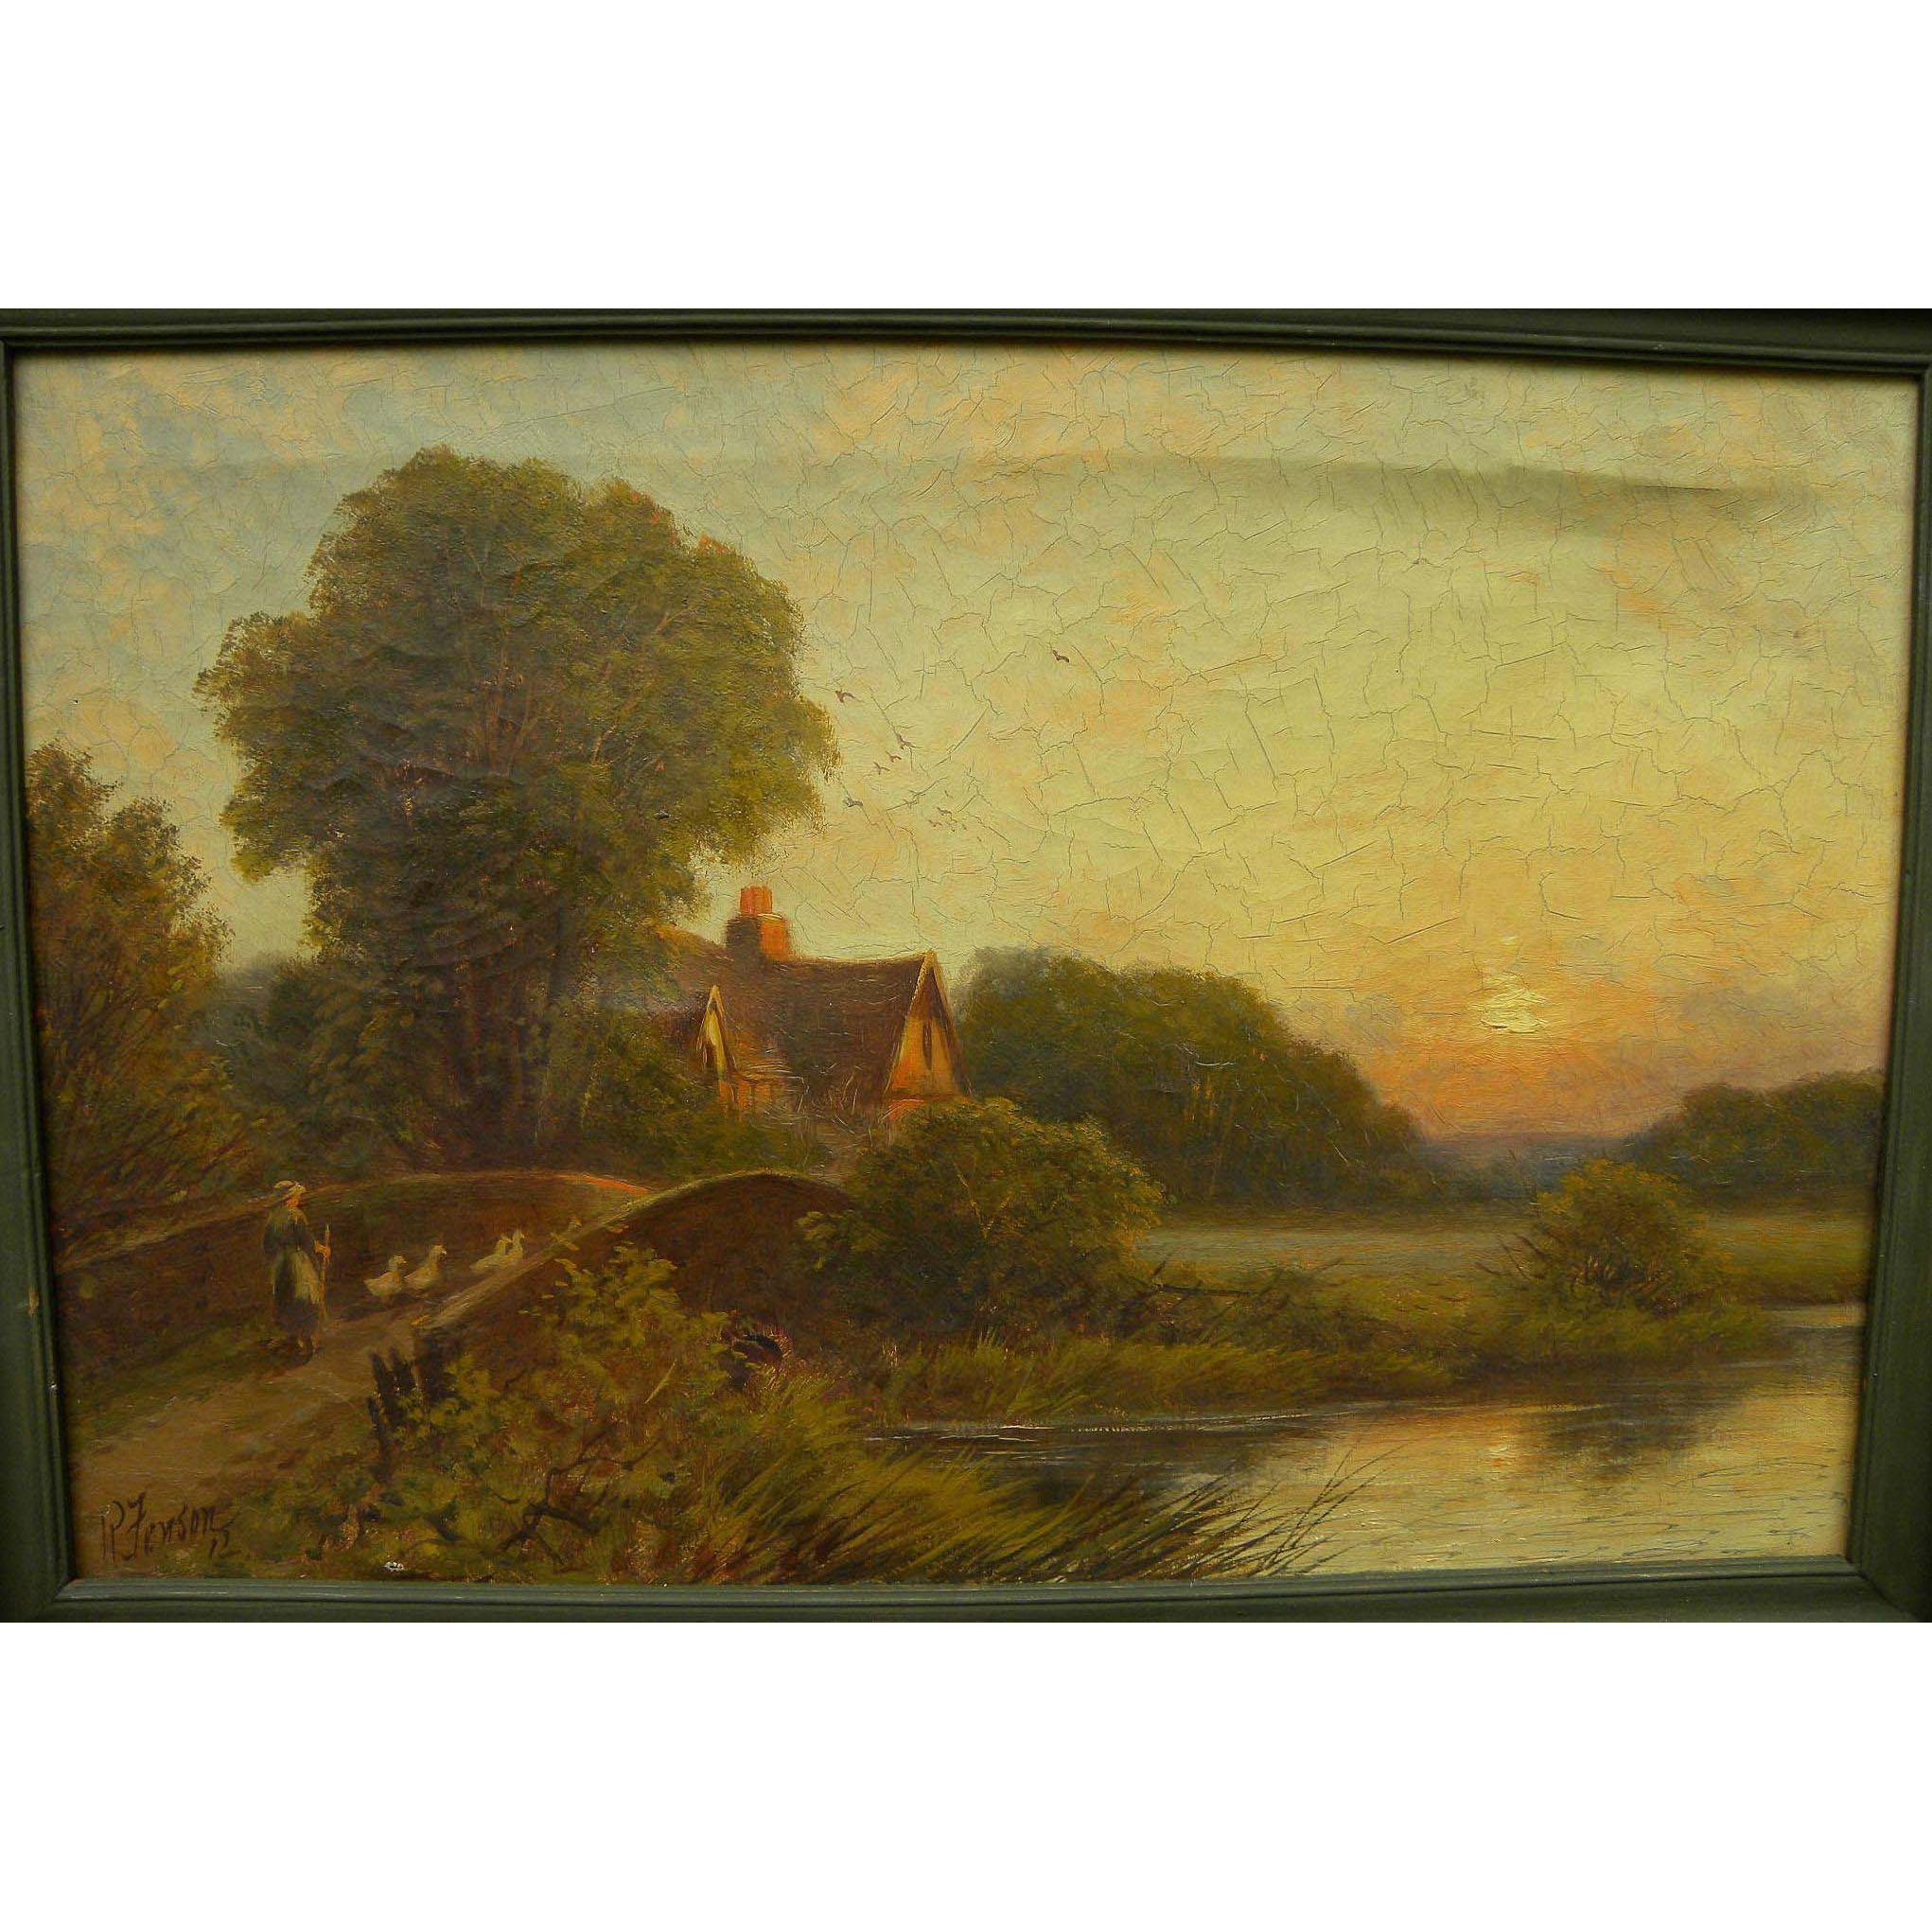 ROBERT ROBIN FENSON (active 1889-1914) English painting of cottage and pond in sunset landscape